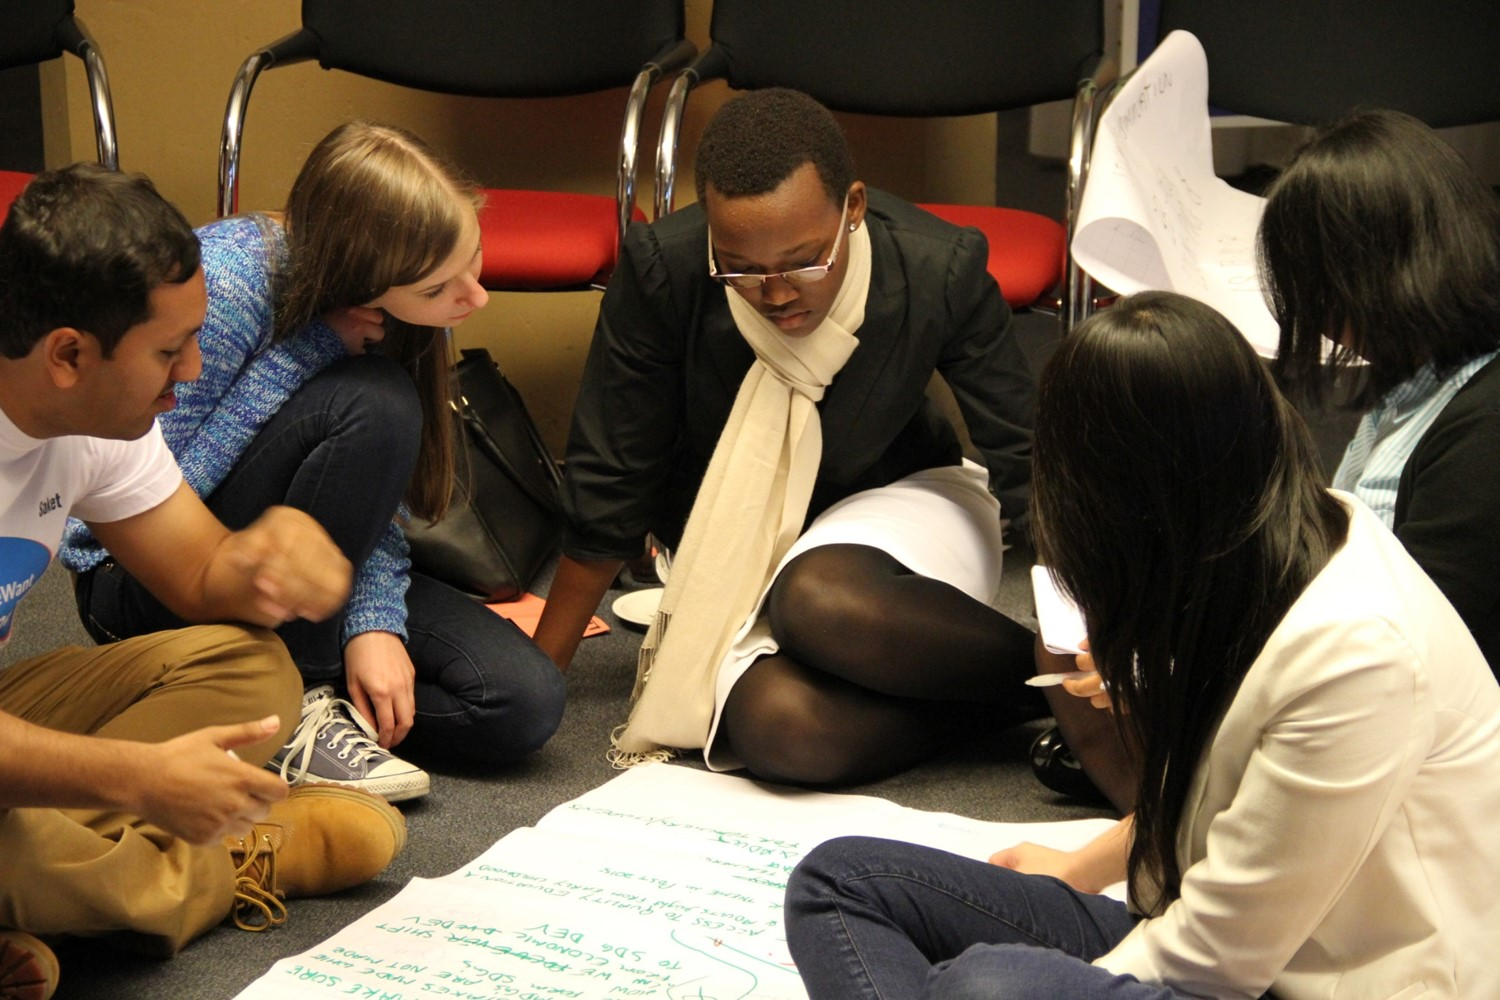 WorldWeWant consultation in Bonn brings together youth from four continents